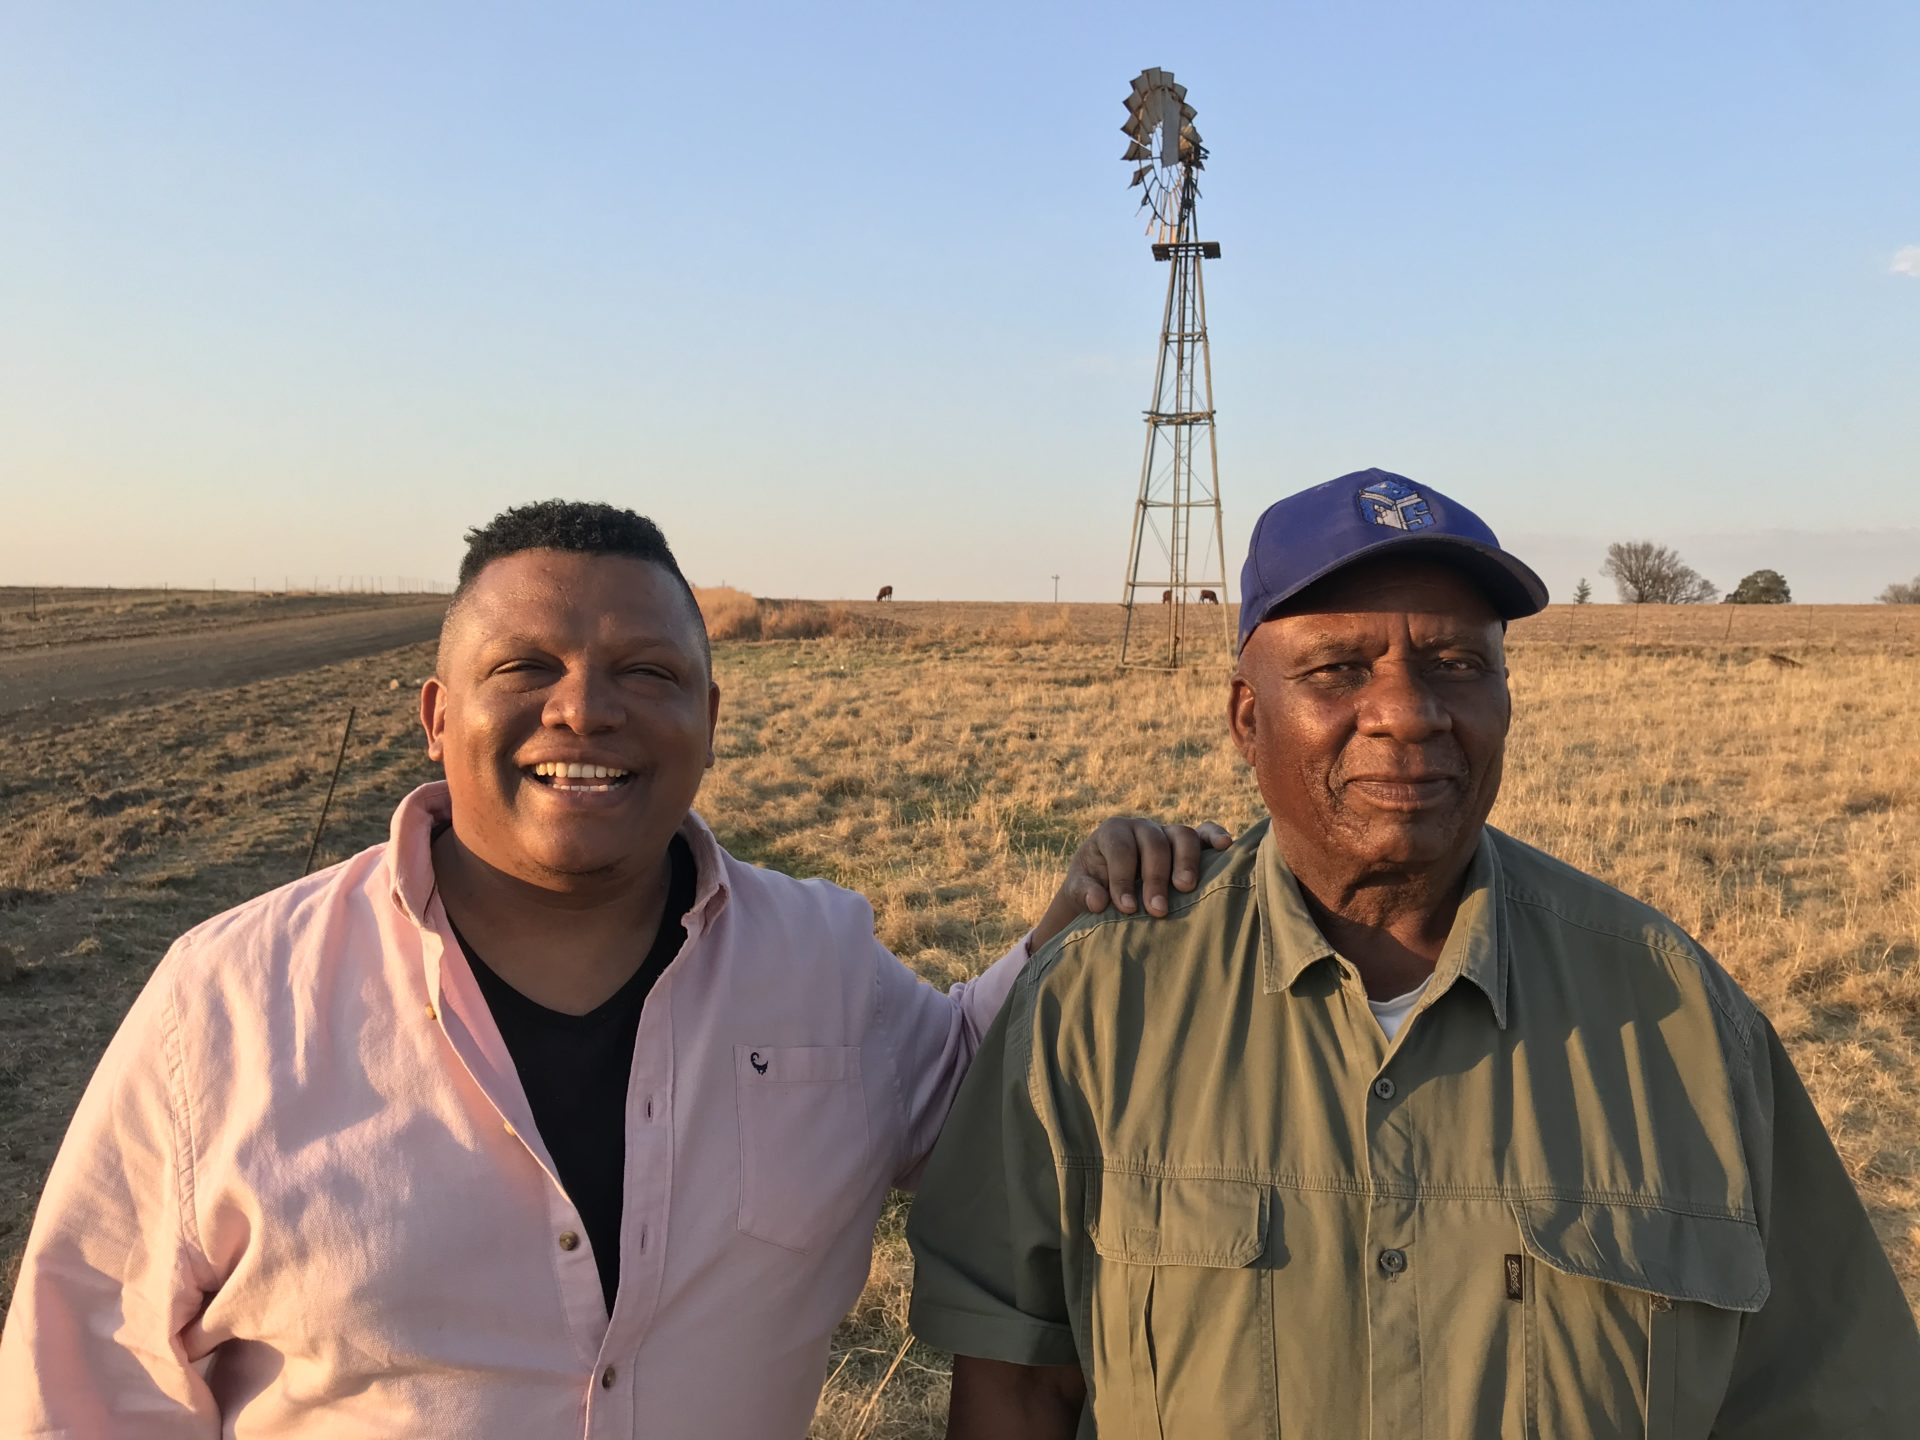 New farmers' TV show: Television presenter Ivor Price and Free State farmer Samson Mahlaba, who is featured on